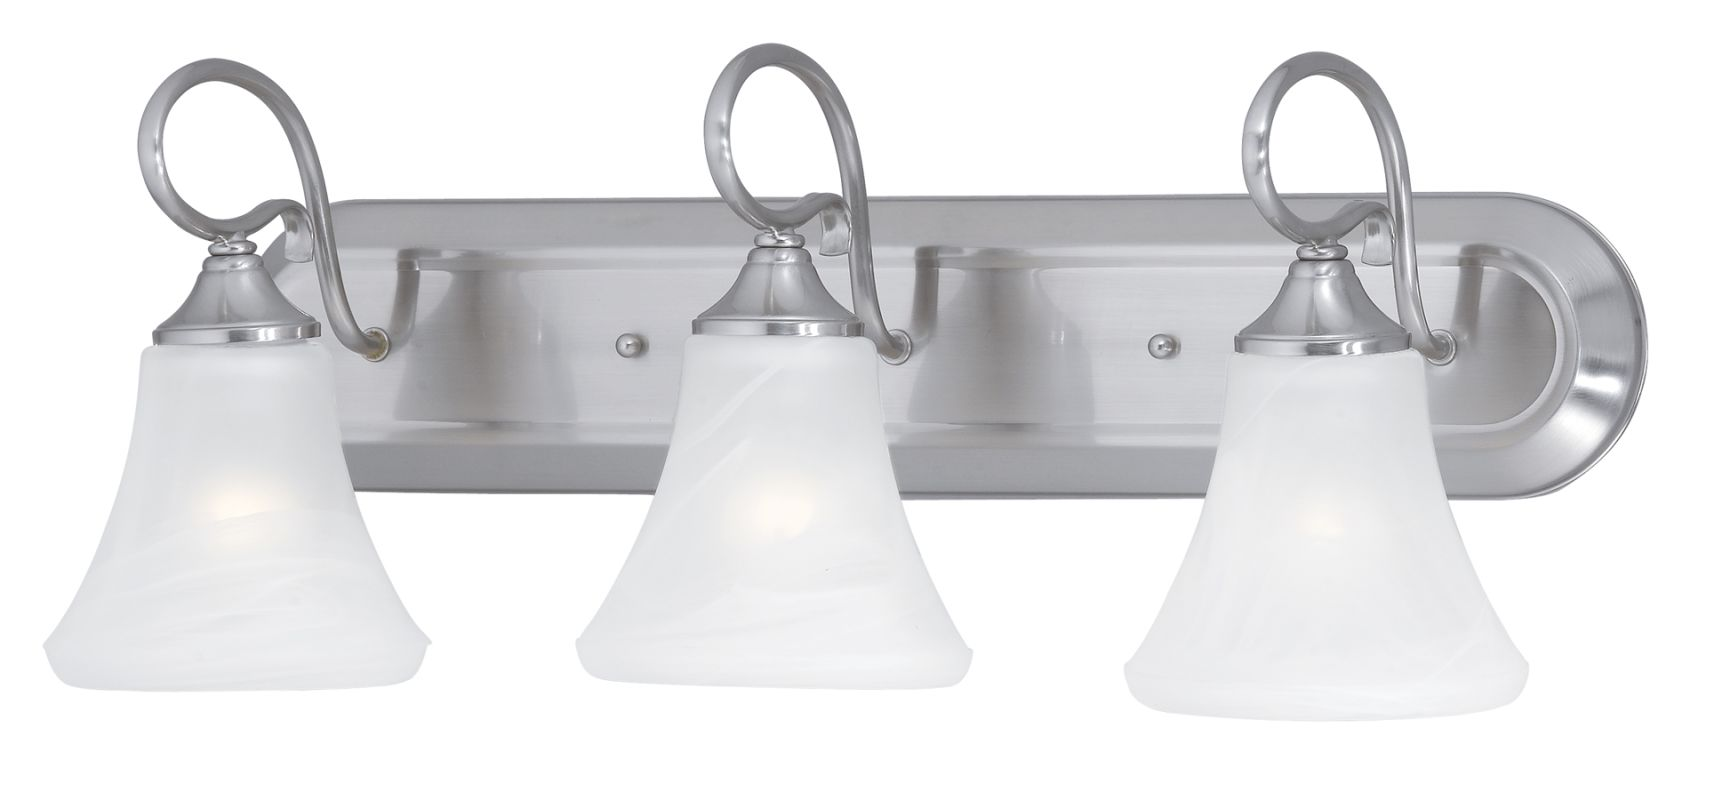 "Thomas Lighting SL7443 3 Light 24"" Wide Bathroom Fixture from the"